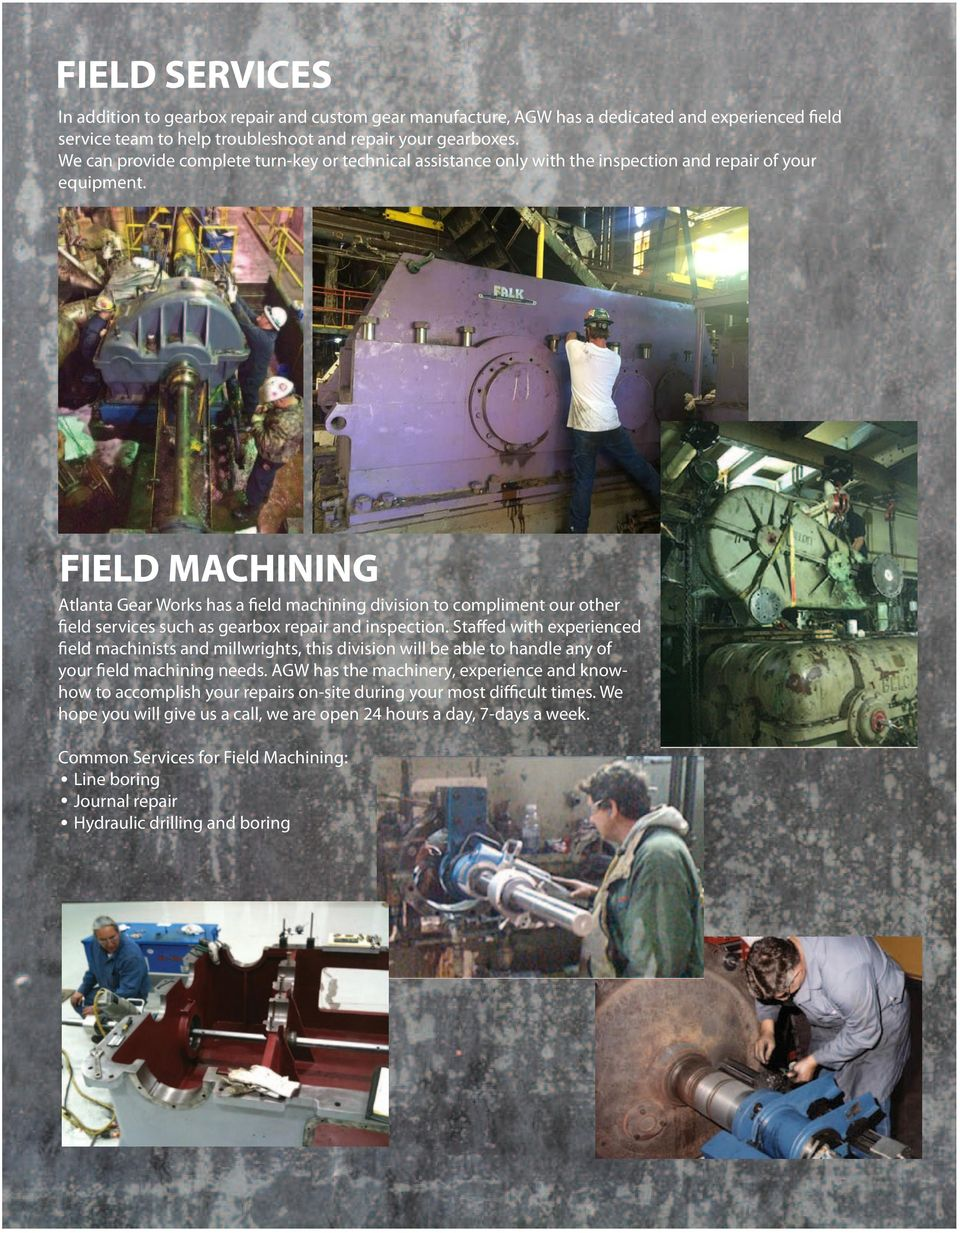 Atlanta Gear Works has a field machining division to compliment our other field services such as gearbox repair and inspection.